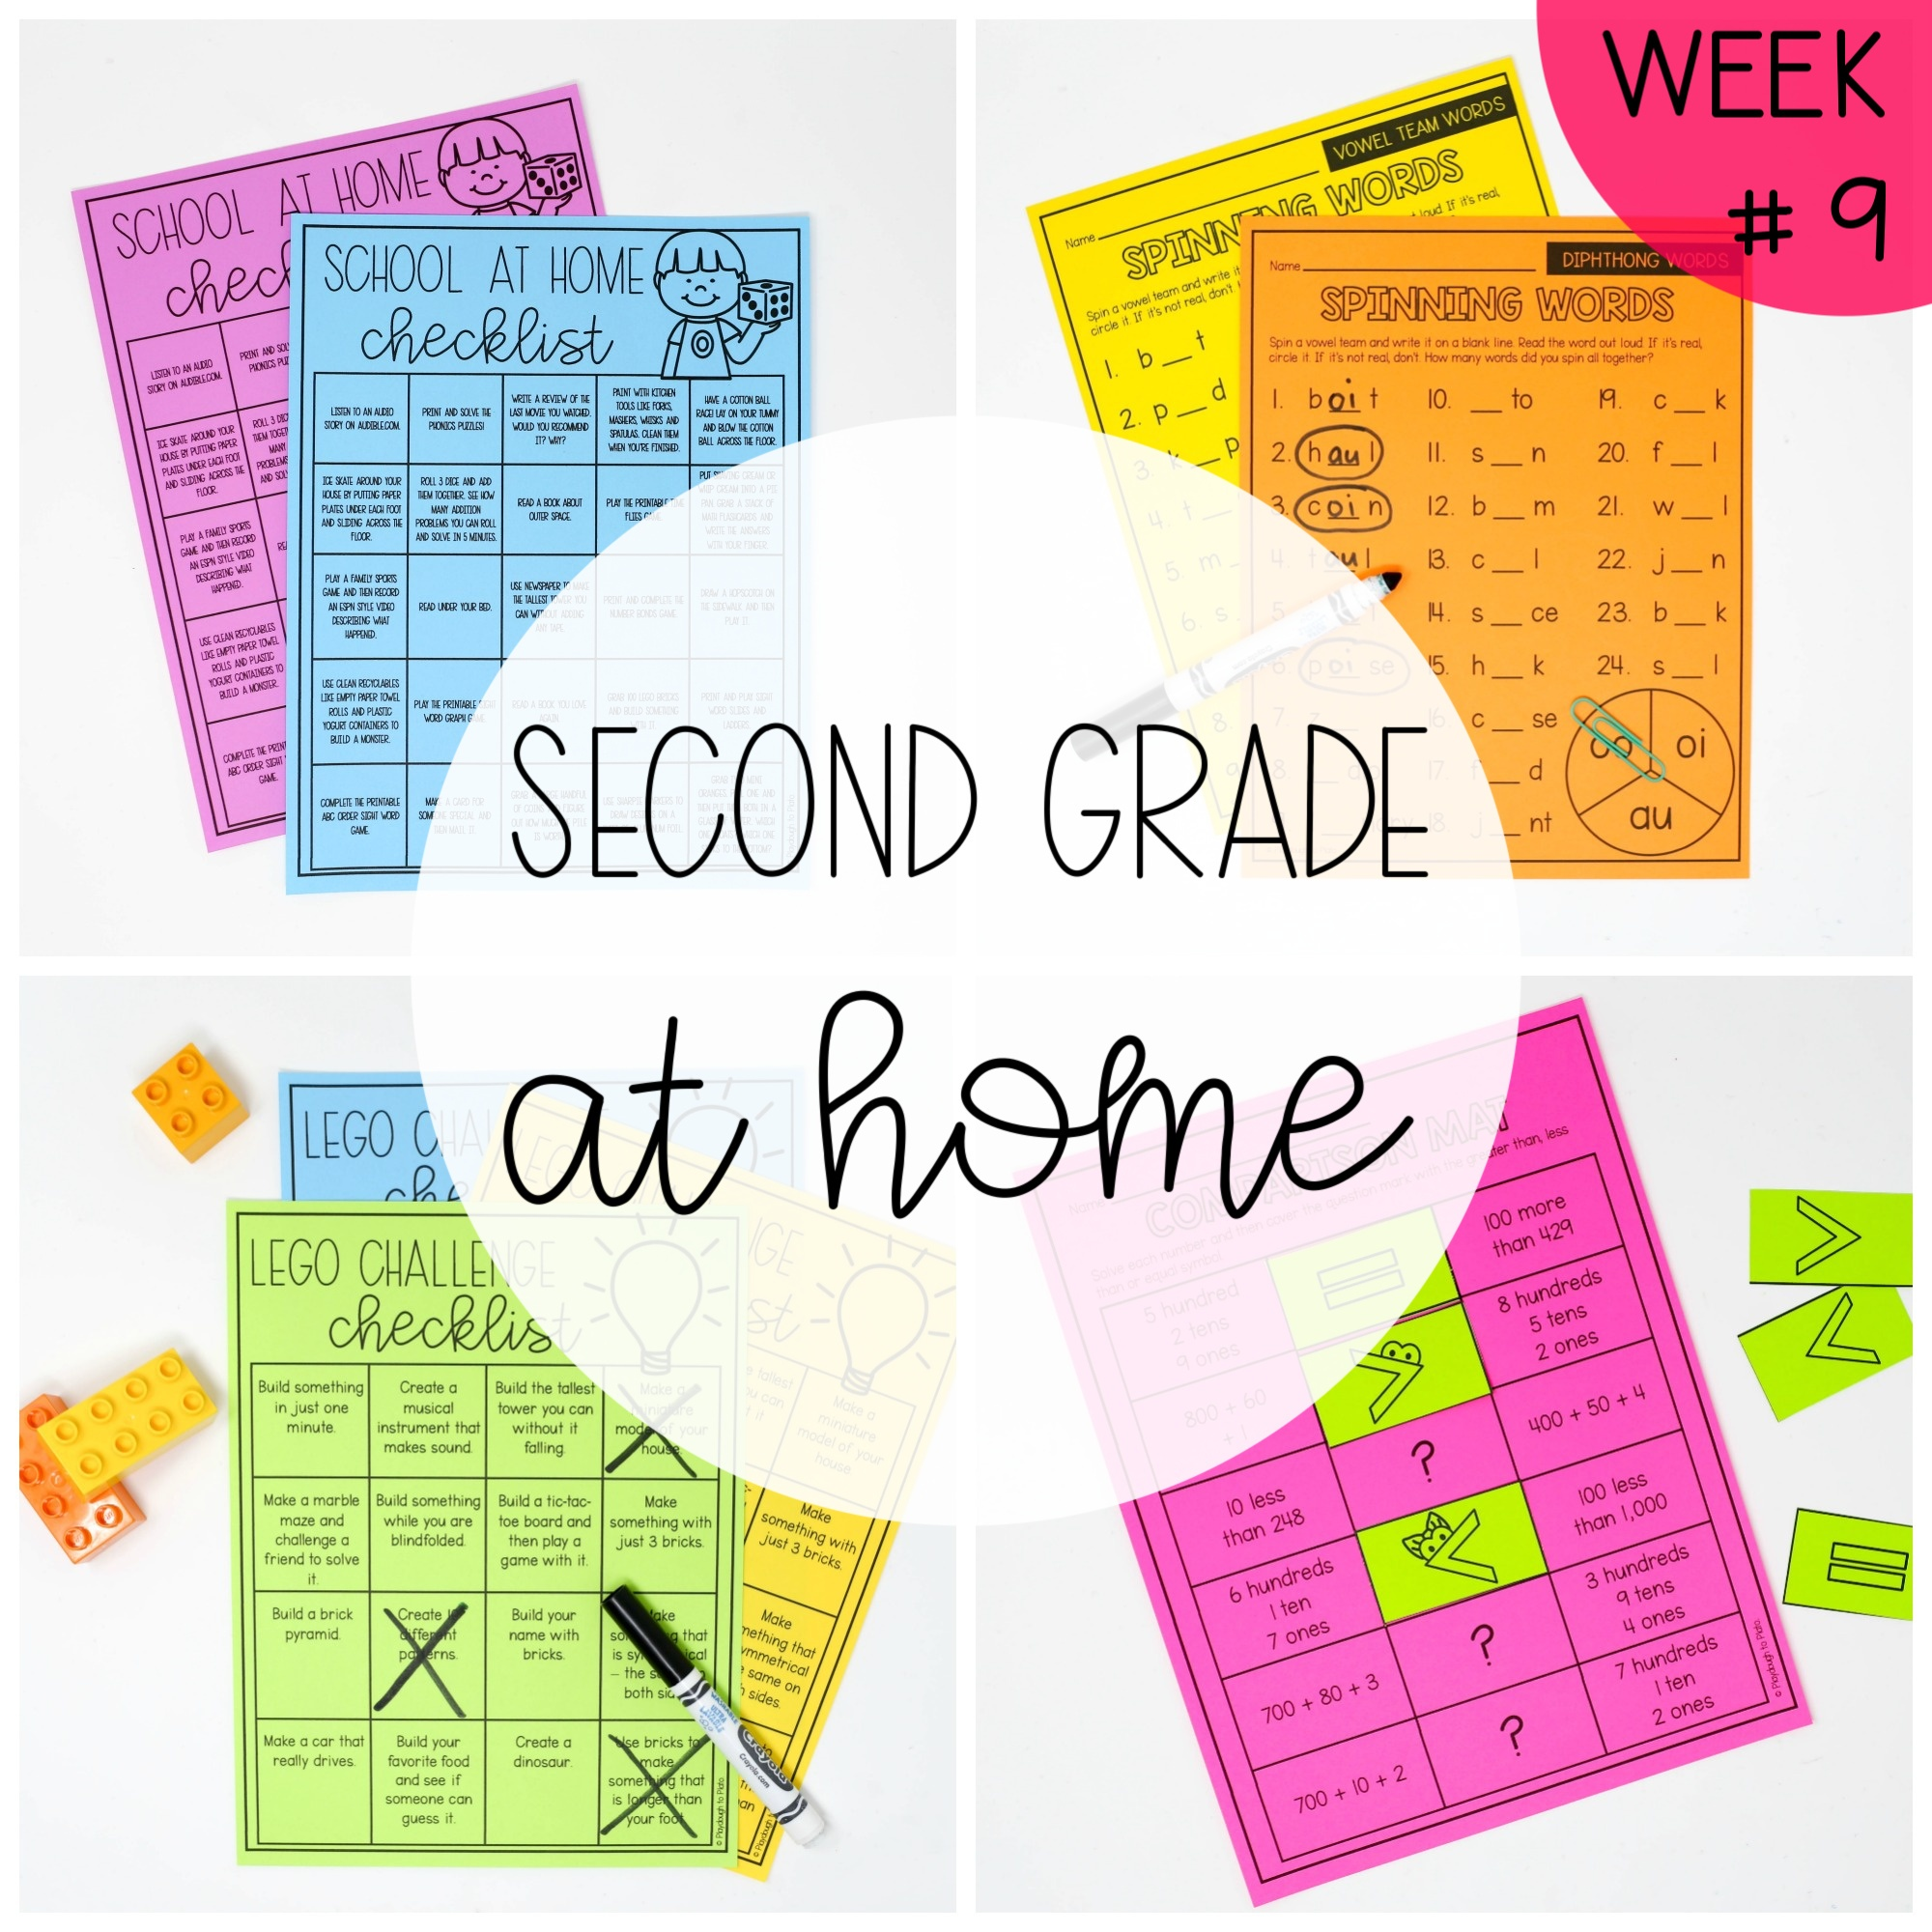 Second Grade at Home – Week Nine